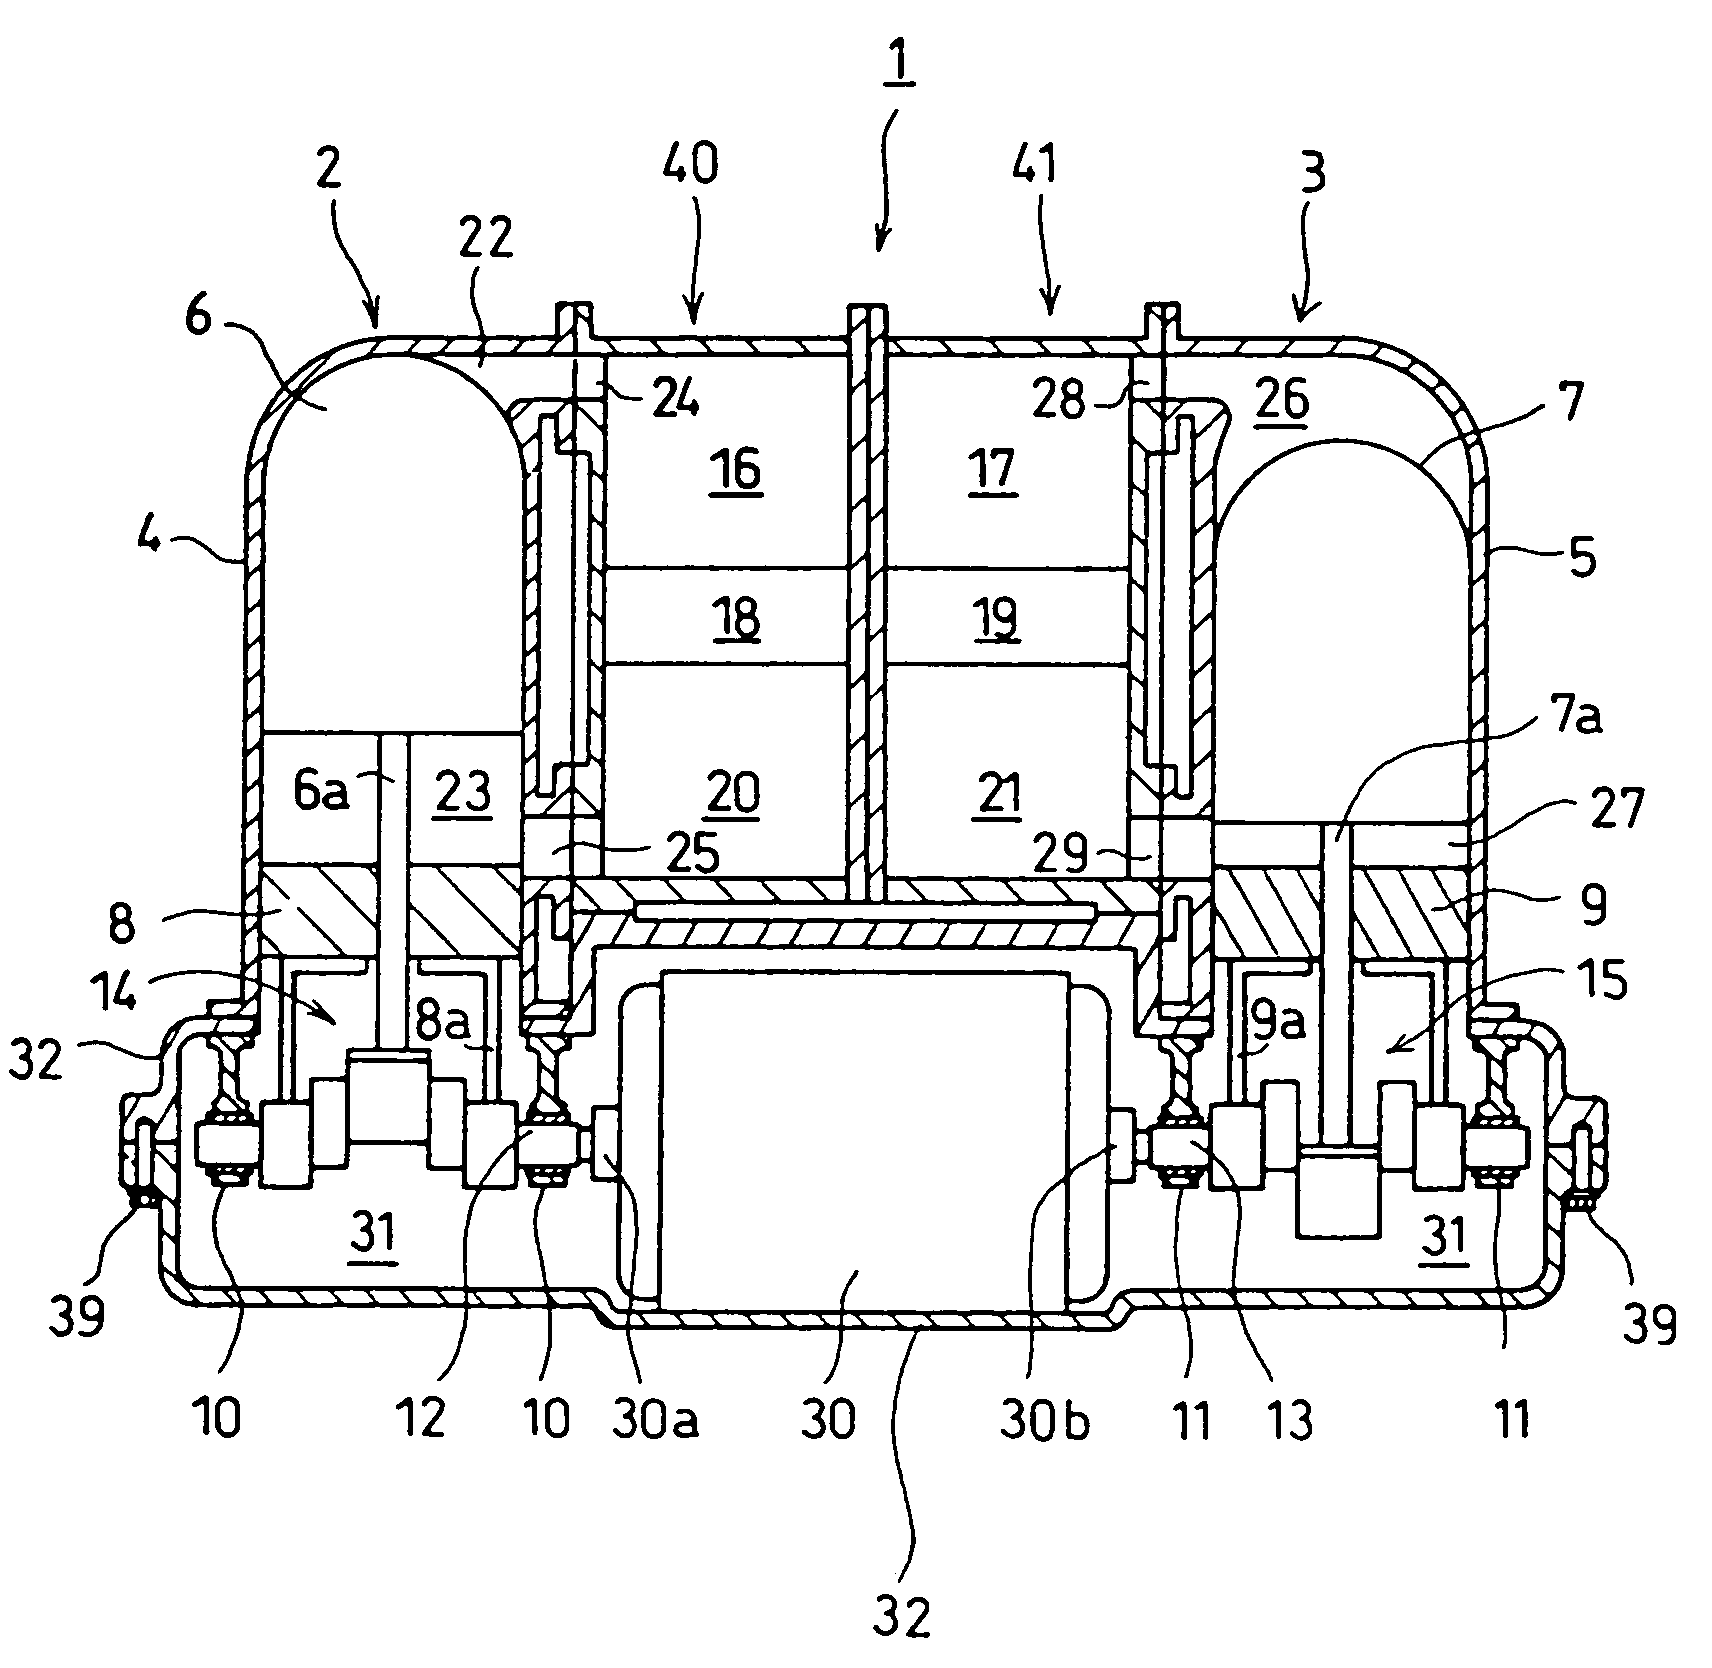 small resolution of multistage stirling engine us 7484366 b2 patent drawing